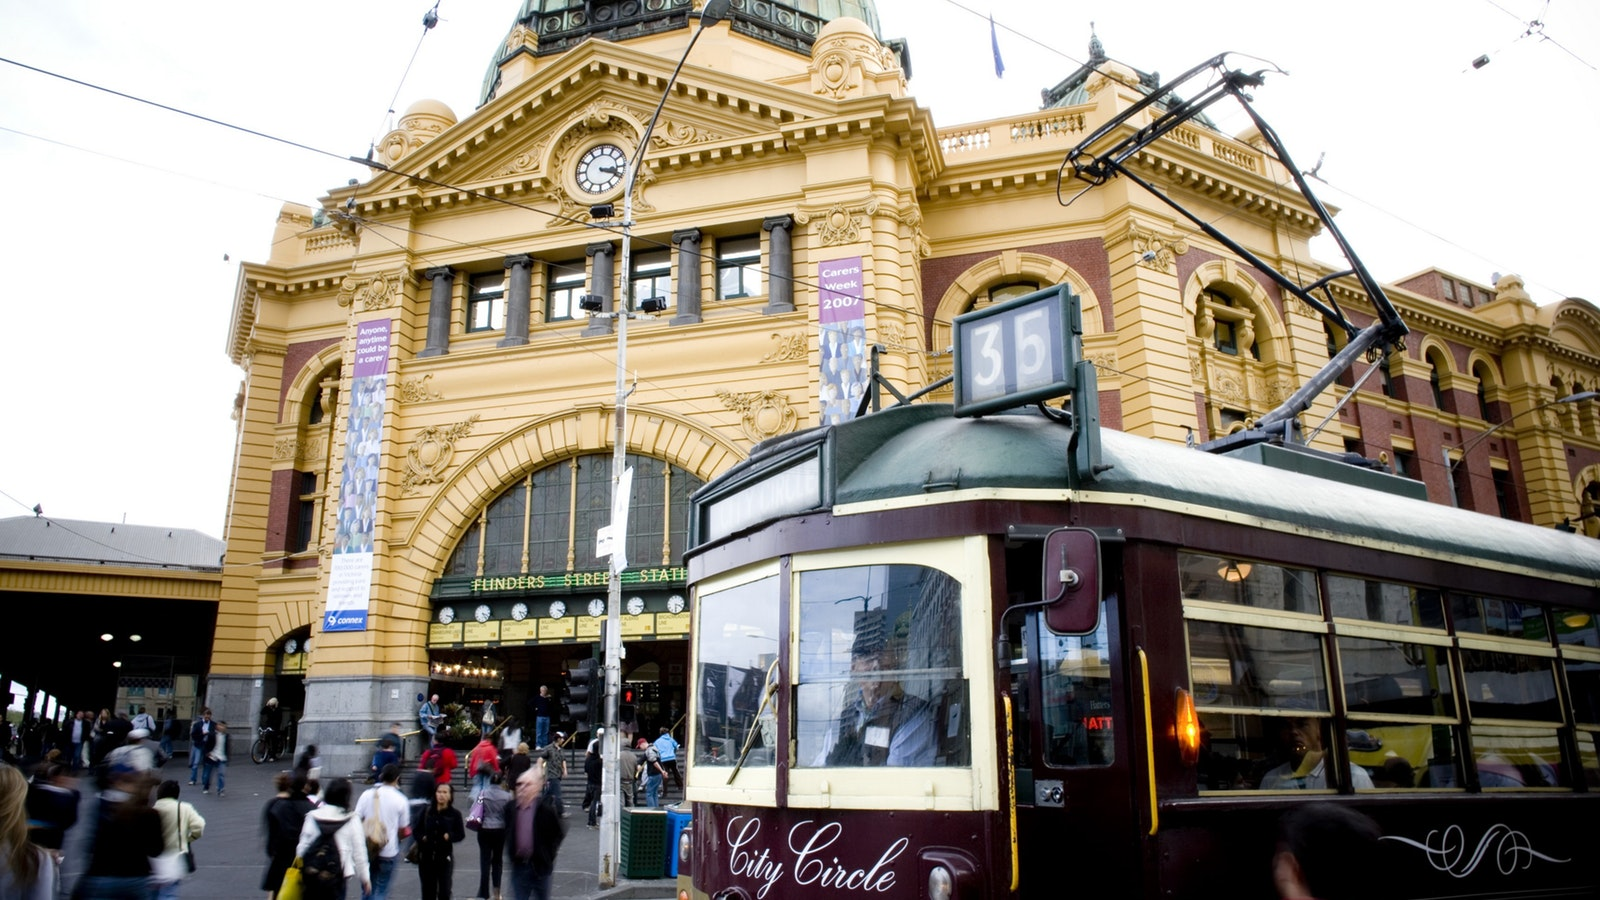 City Circle Tram Attraction Melbourne Victoria Australia